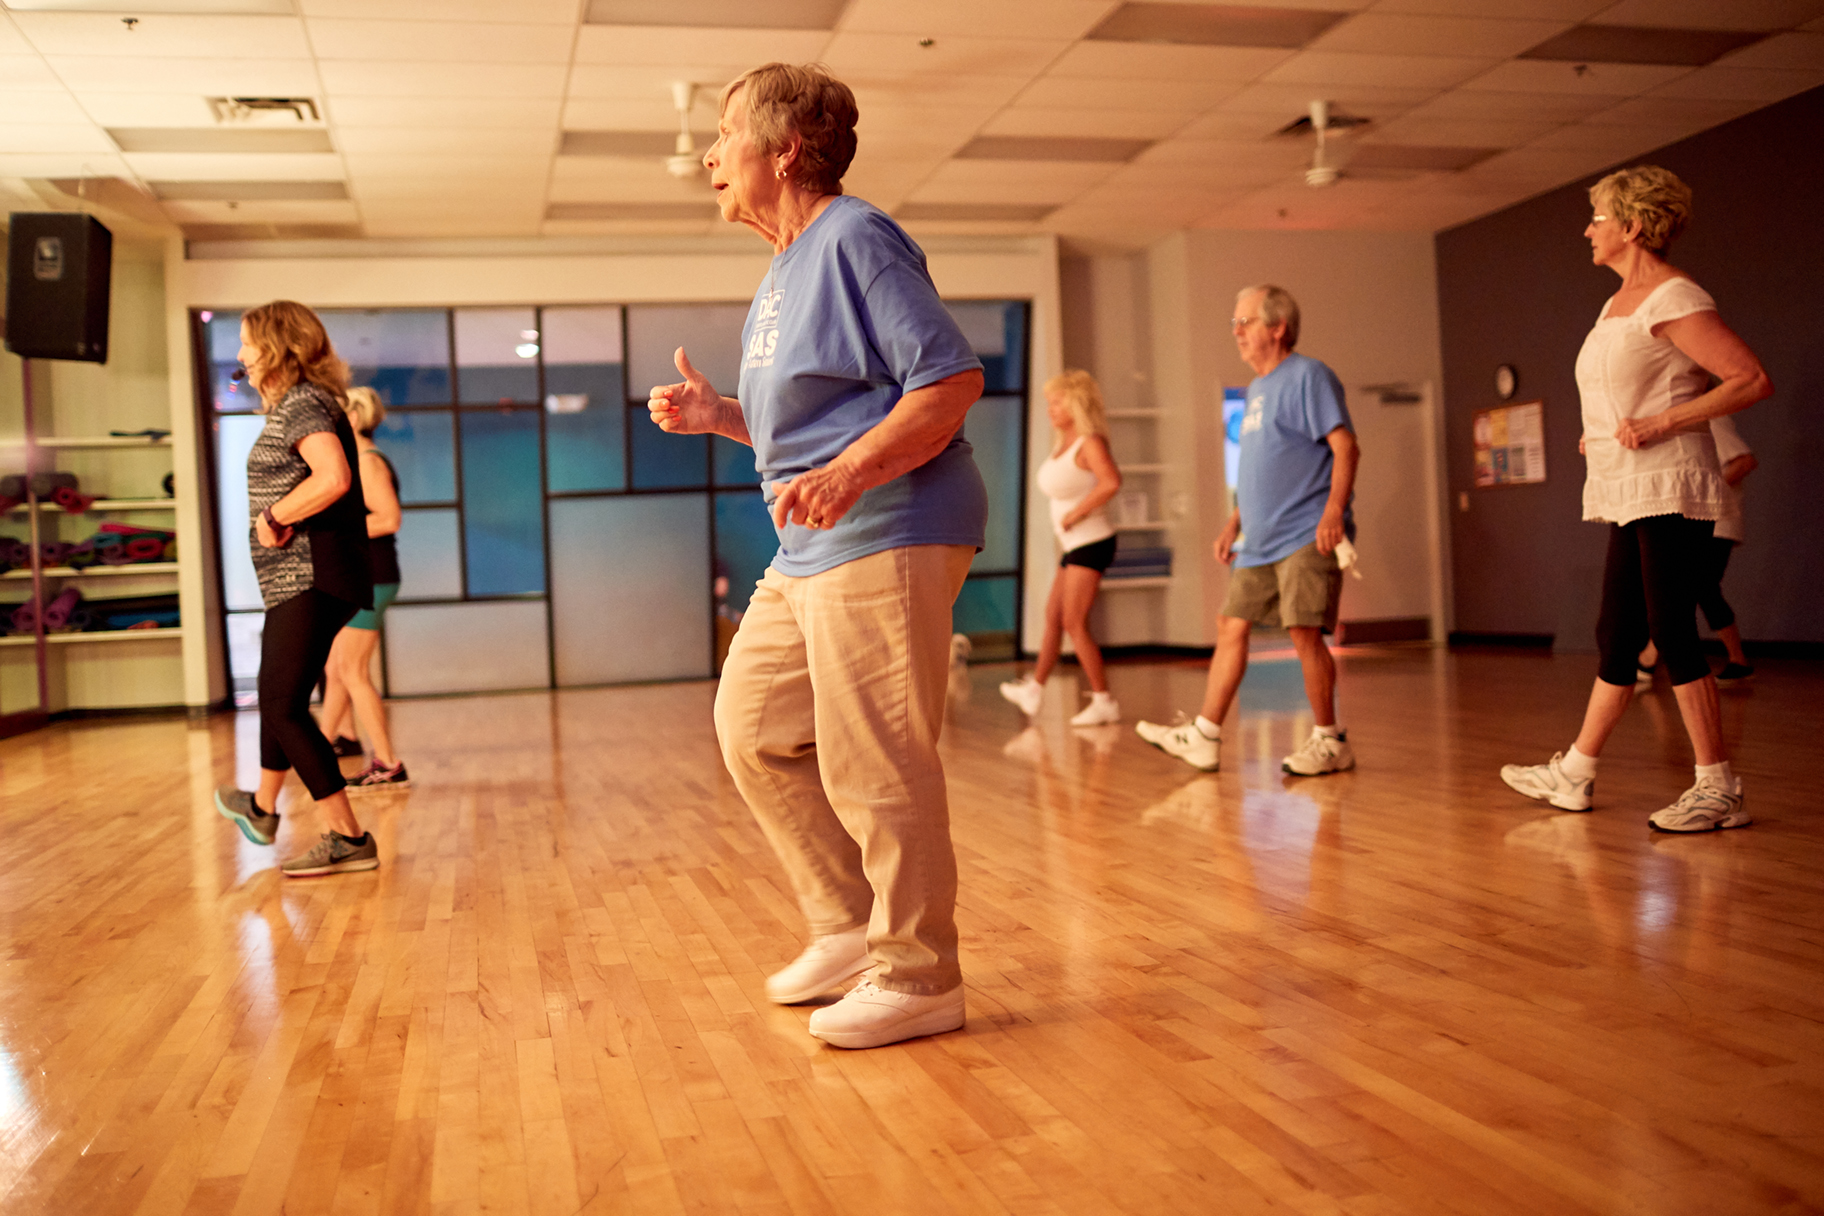 Zumba Gold - Latin dance inspired workout made for seniors, beginners or others needing modifications in their exercise routine. Build cardiovascular health by challenging the heart and working muscles through dance moves. See Schedule →